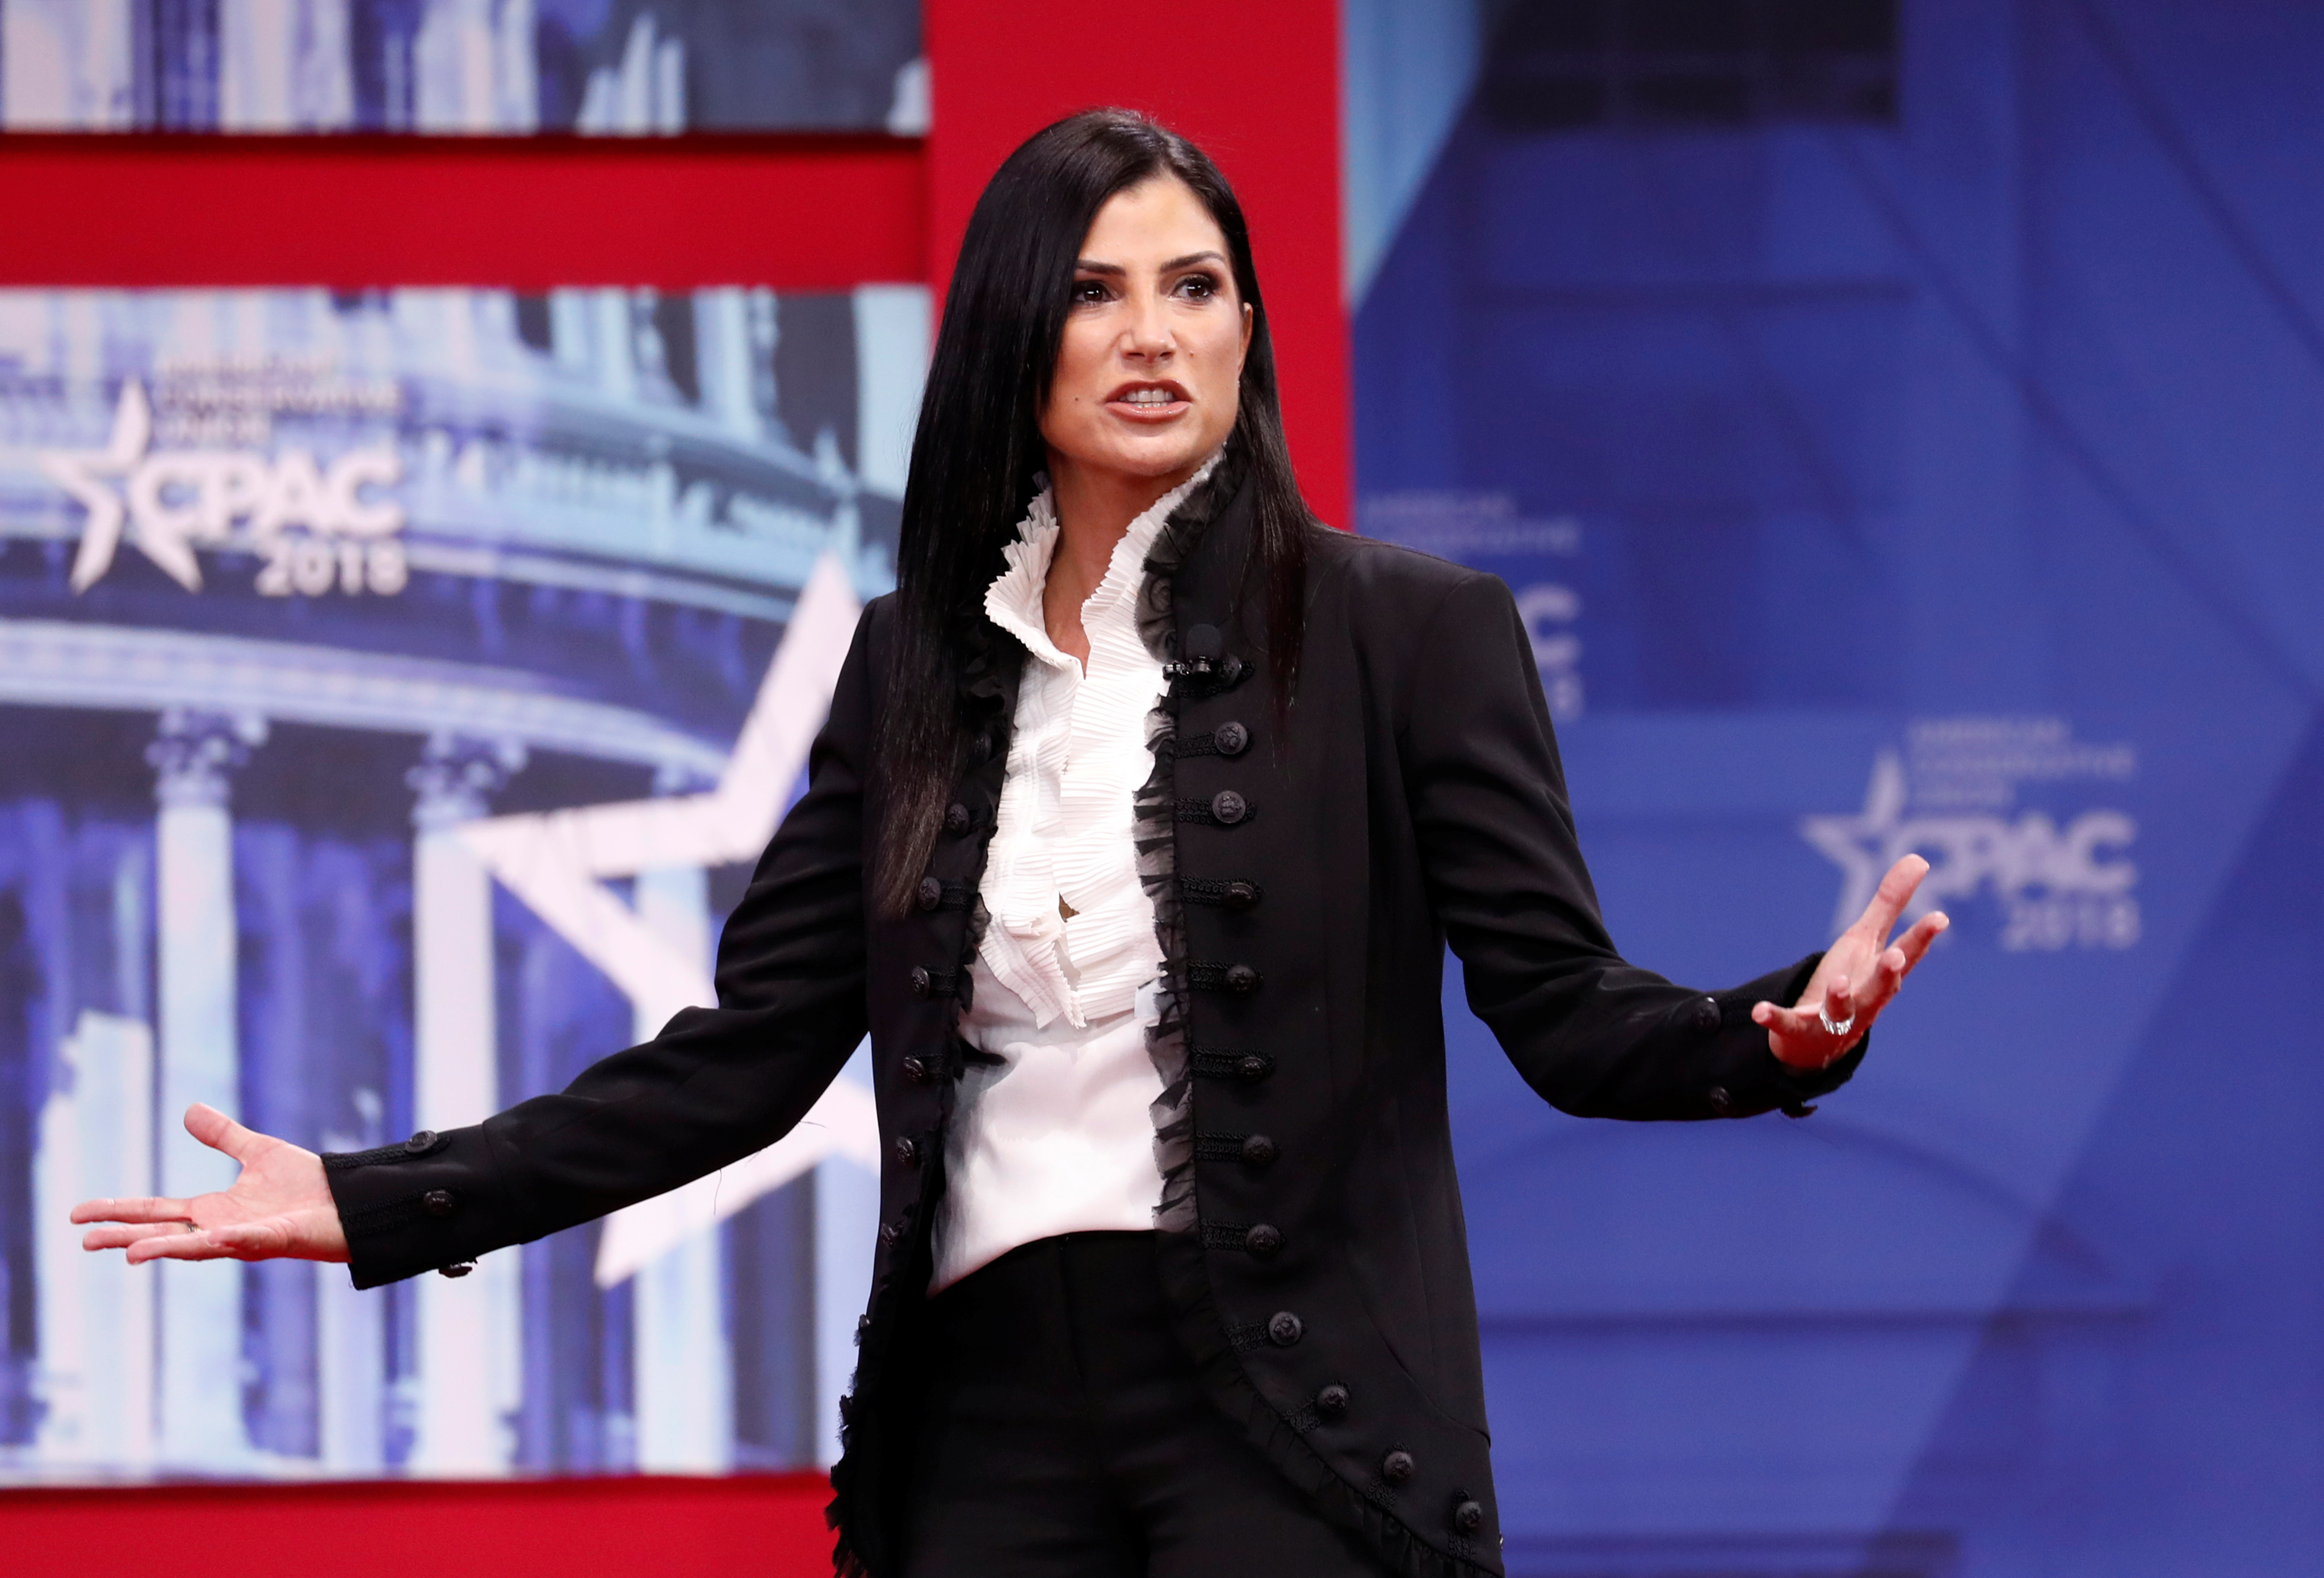 Dana Loesch speaks CPAC conference held in National Harbor, Maryland